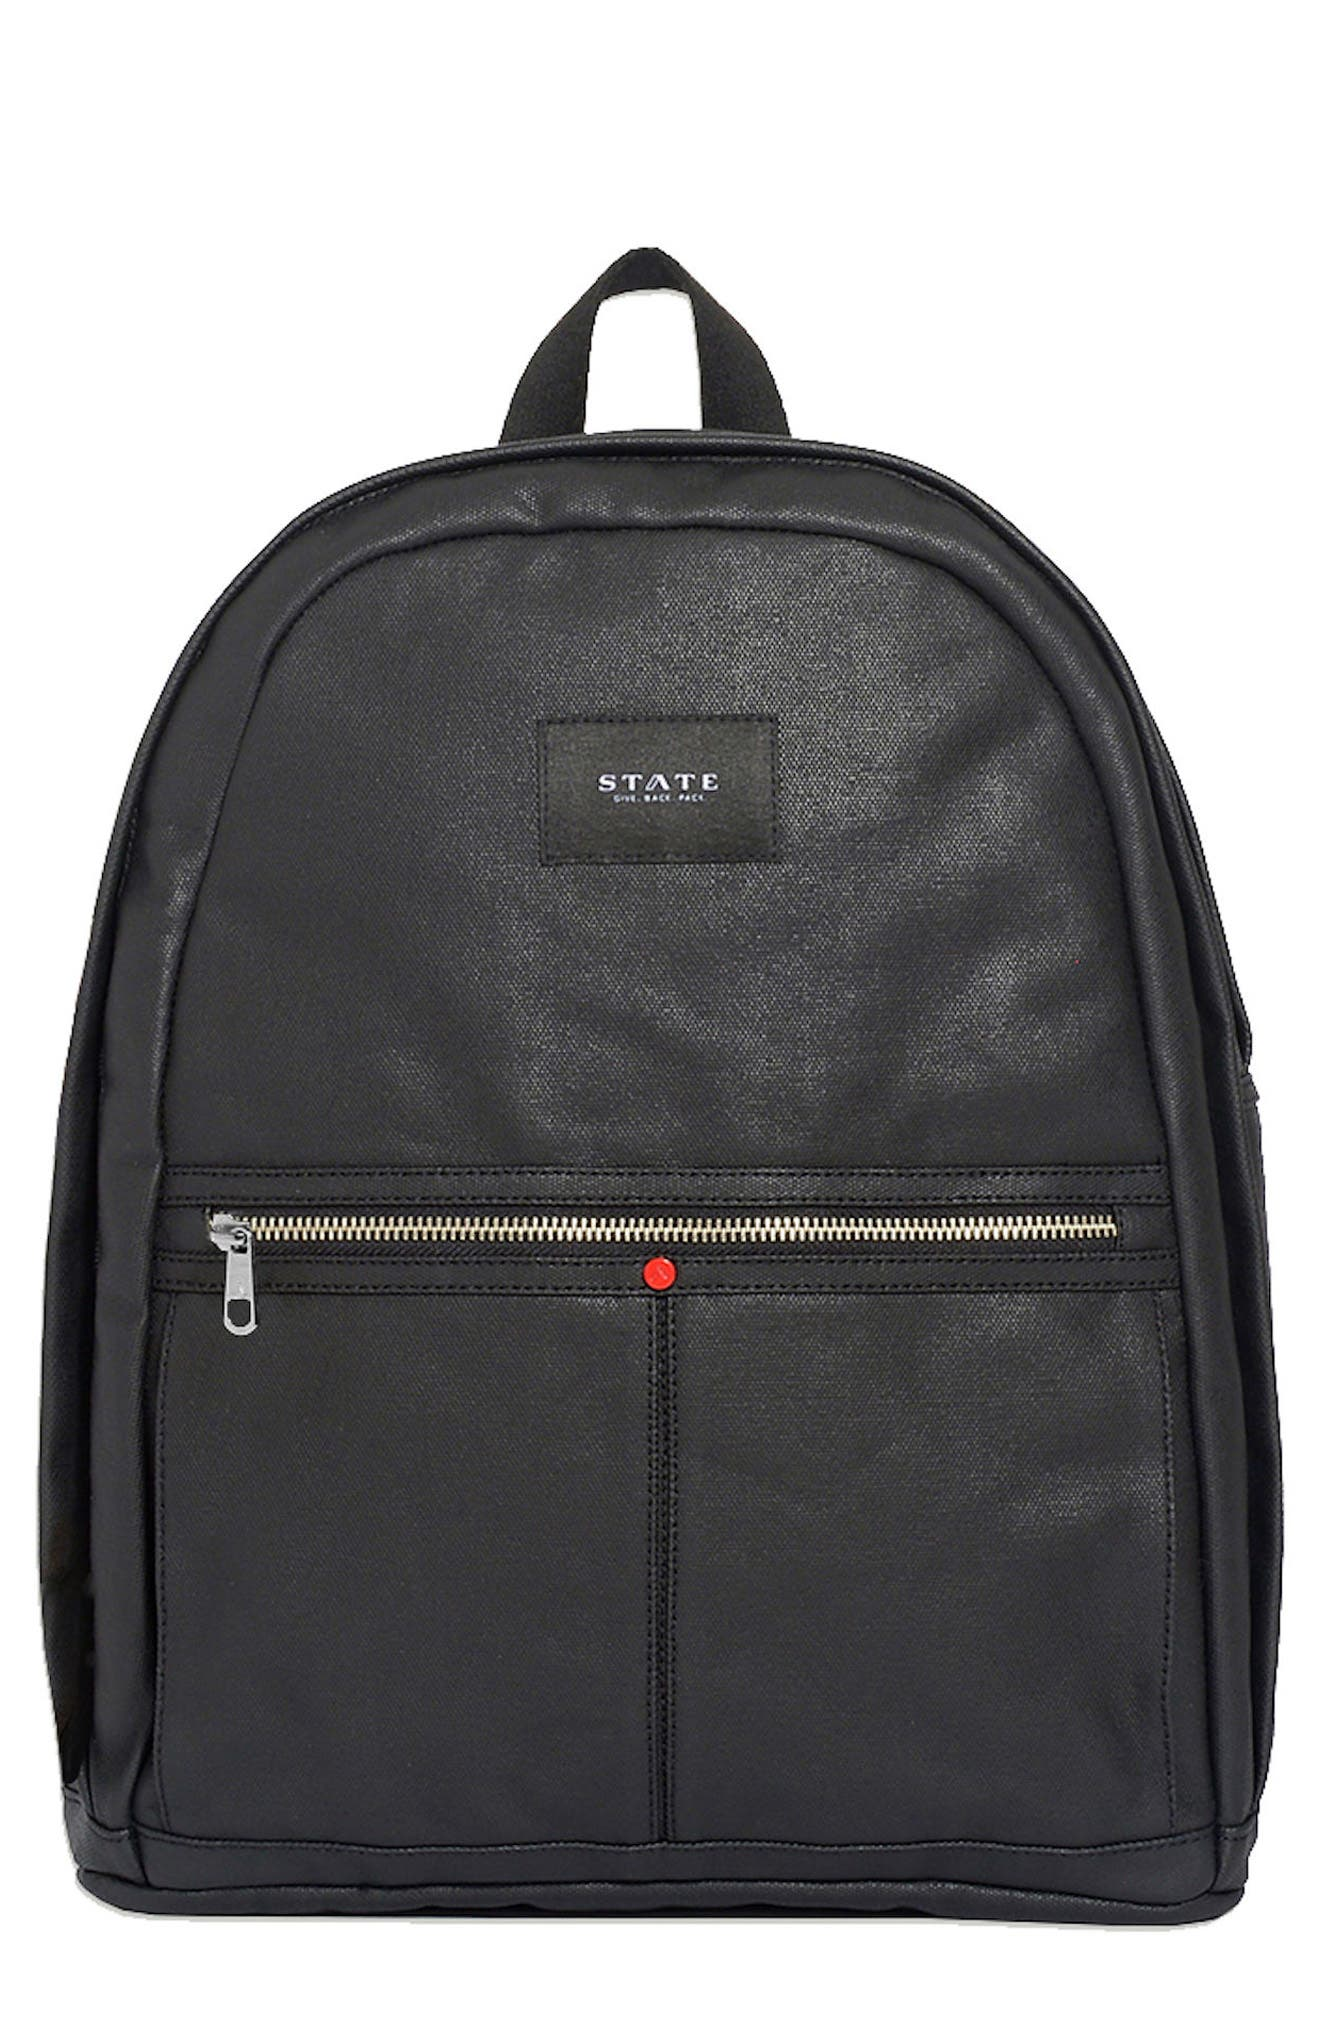 Greenpoint Kent Backpack,                         Main,                         color, 001